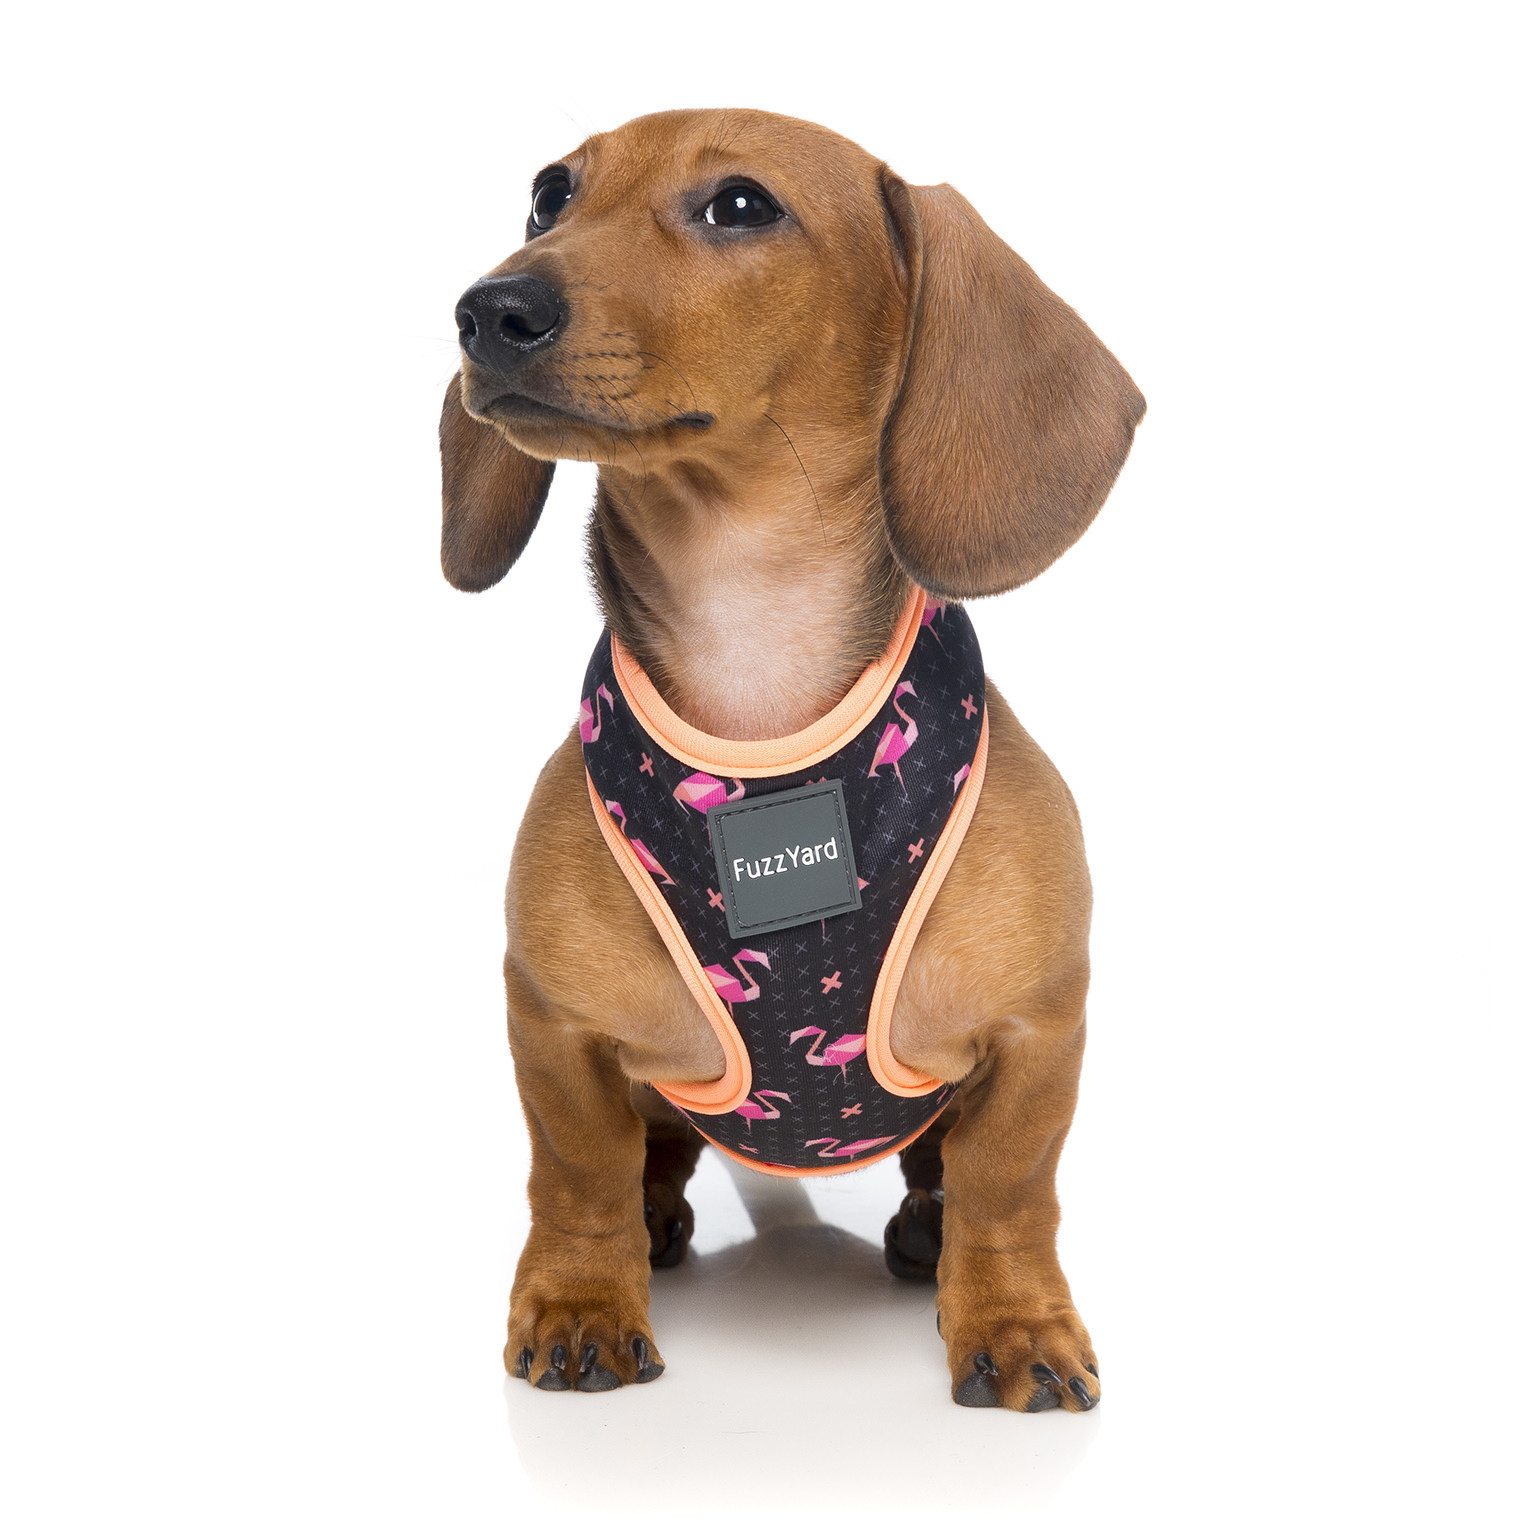 Fuzzyard Fabmingo Dog Harness Small